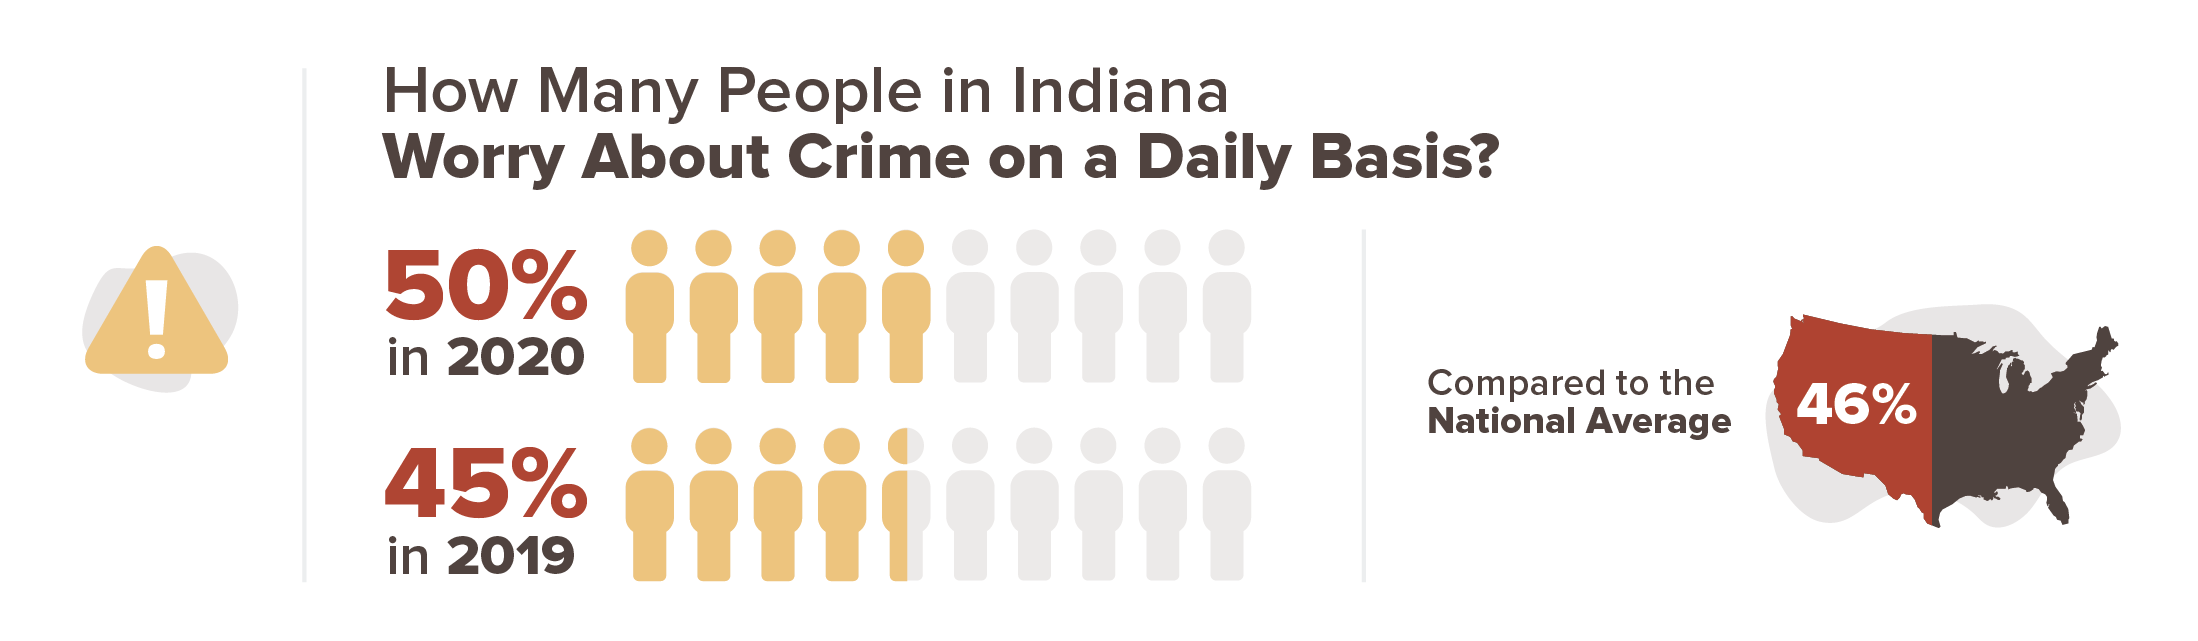 50% of people in Indiana worried about crime on a daily basis in 2020, compared to 45% in 2019